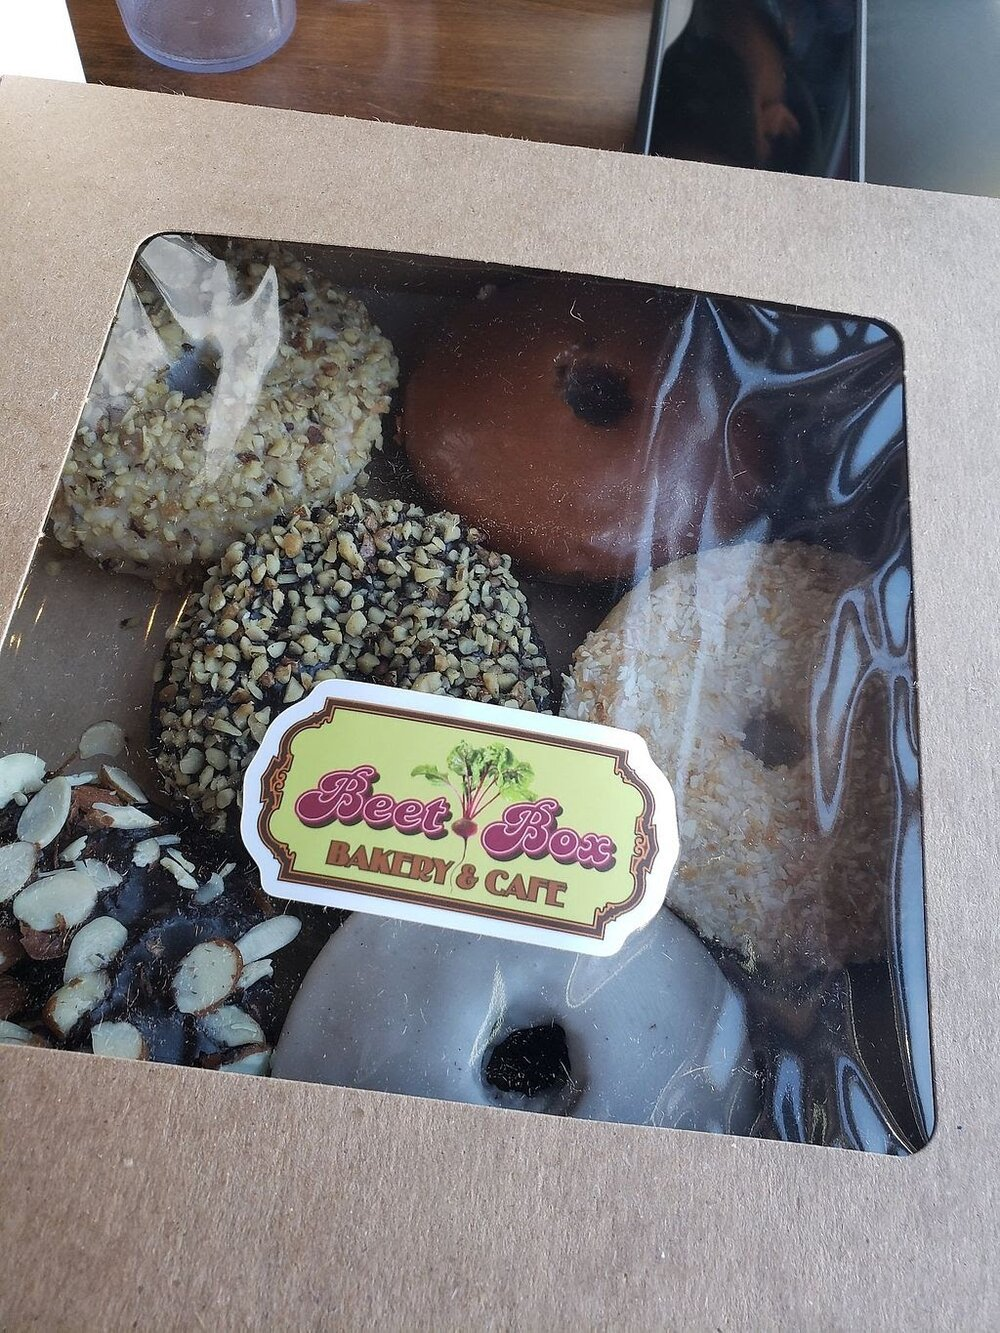 Why just one? Grab a box of donuts to go before heading out from Beet Box Bakery.